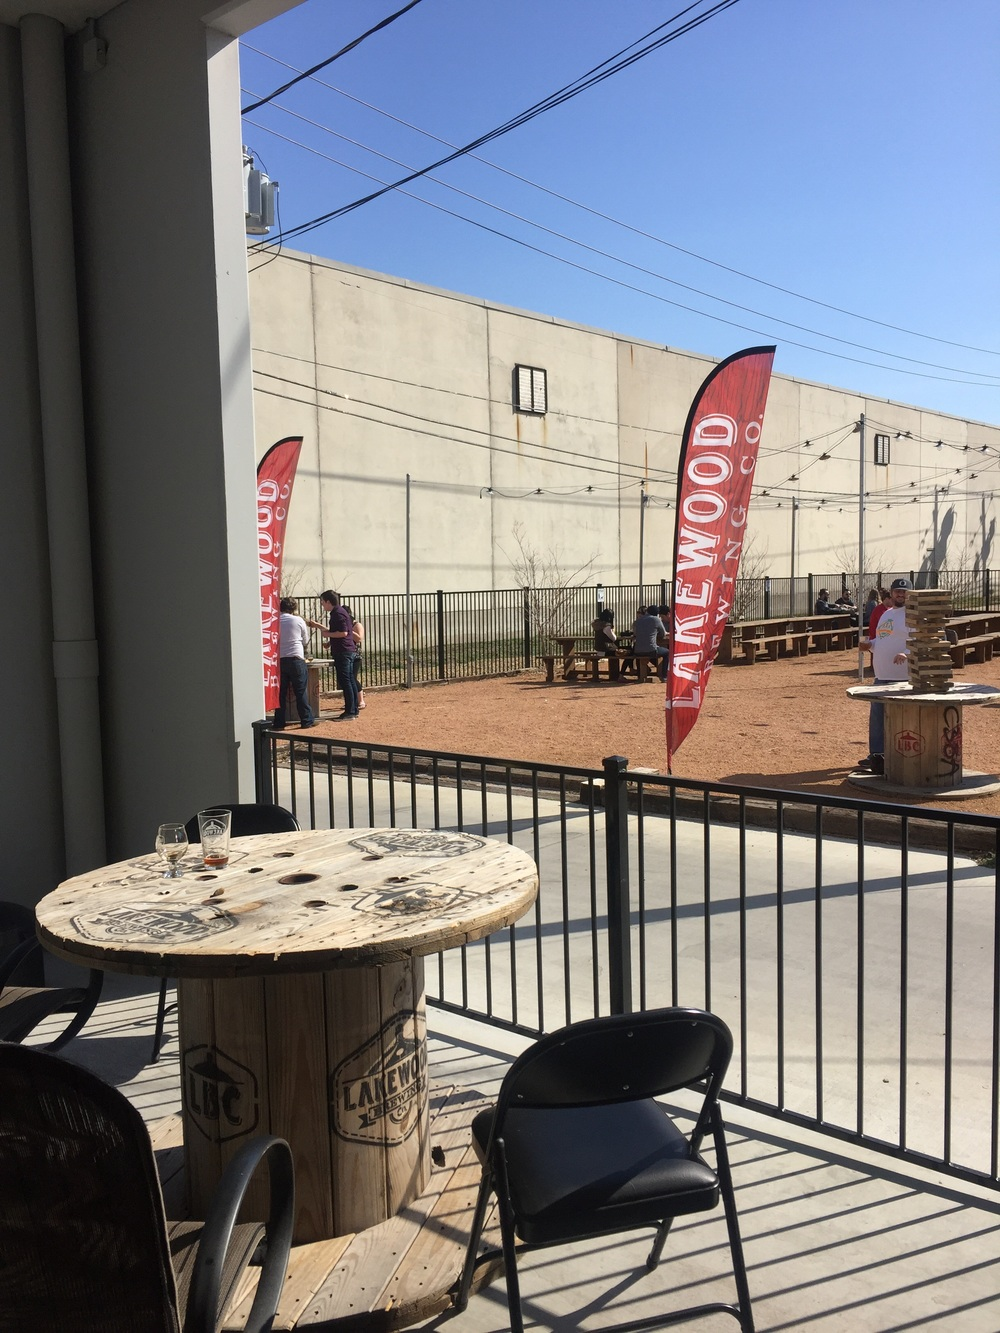 Nice outdoor seating and a beergarden for good-weather days like this one.